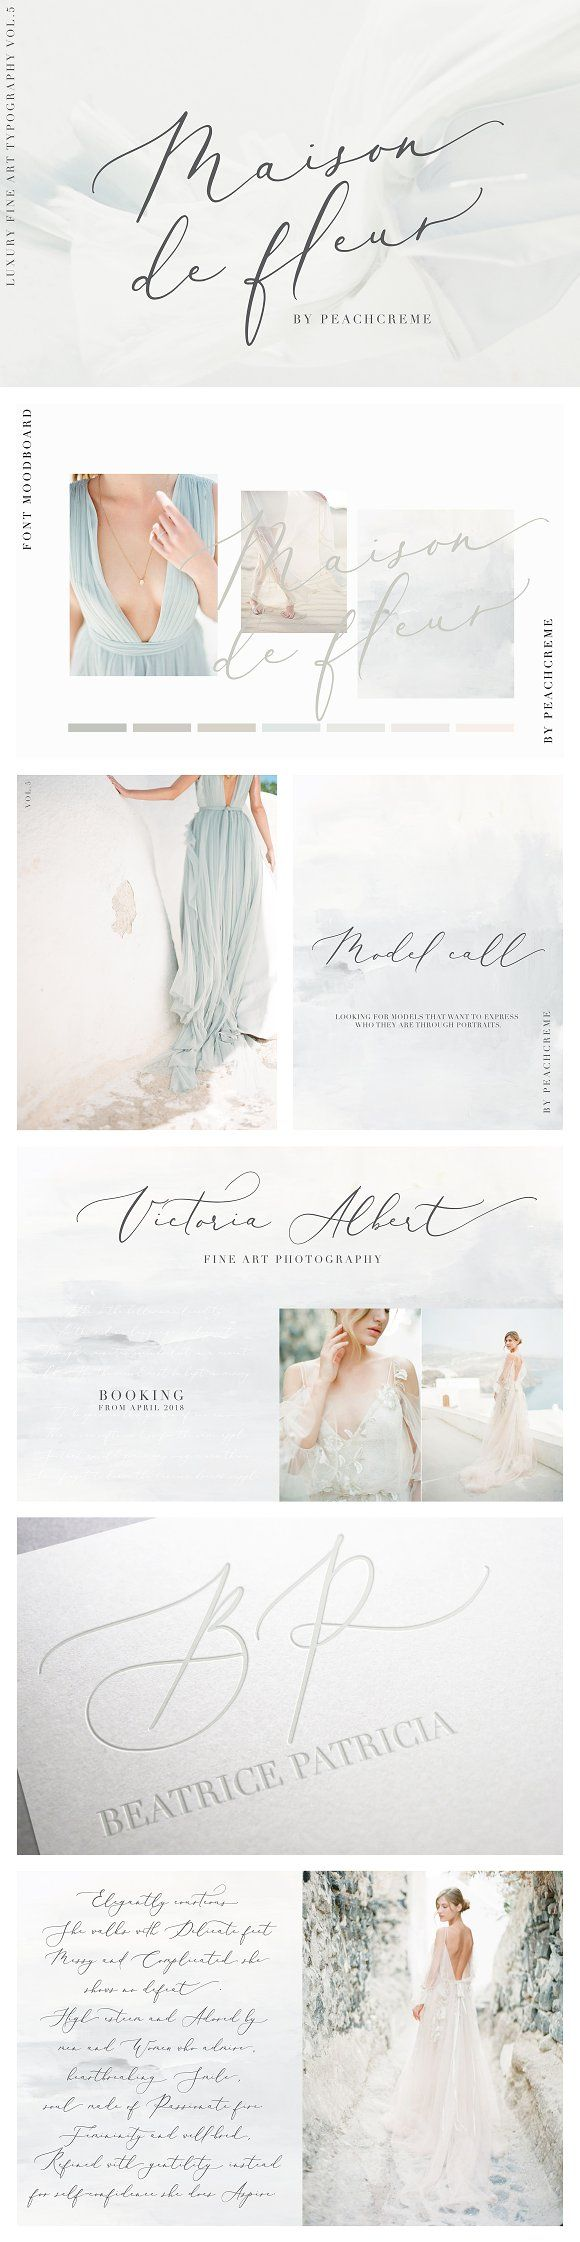 Maison de fleur_Luxury Script Font by PeachCreme on @creativemarket